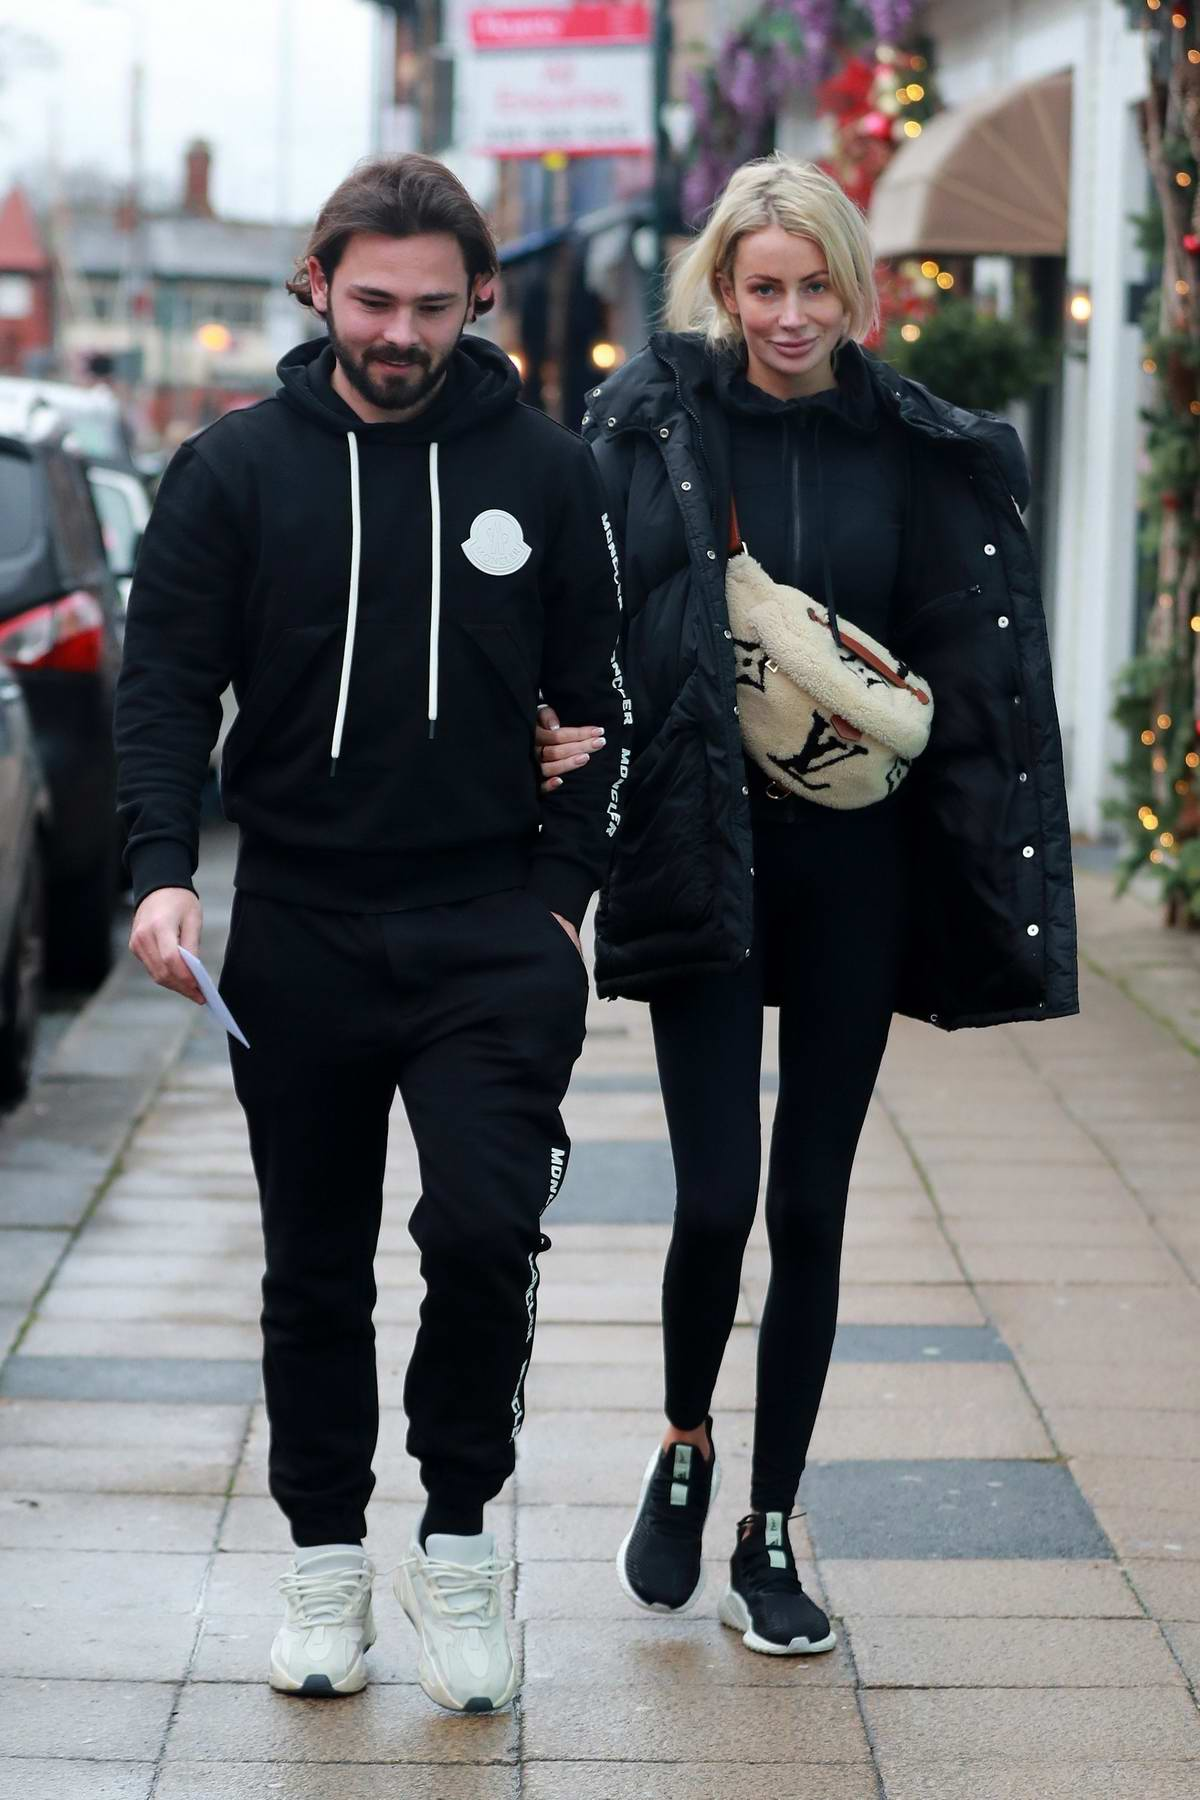 Olivia Attwood and fiancé Bradley Dack seen out for lunch at Victors Restaurant in Hale, Cheshire, UK